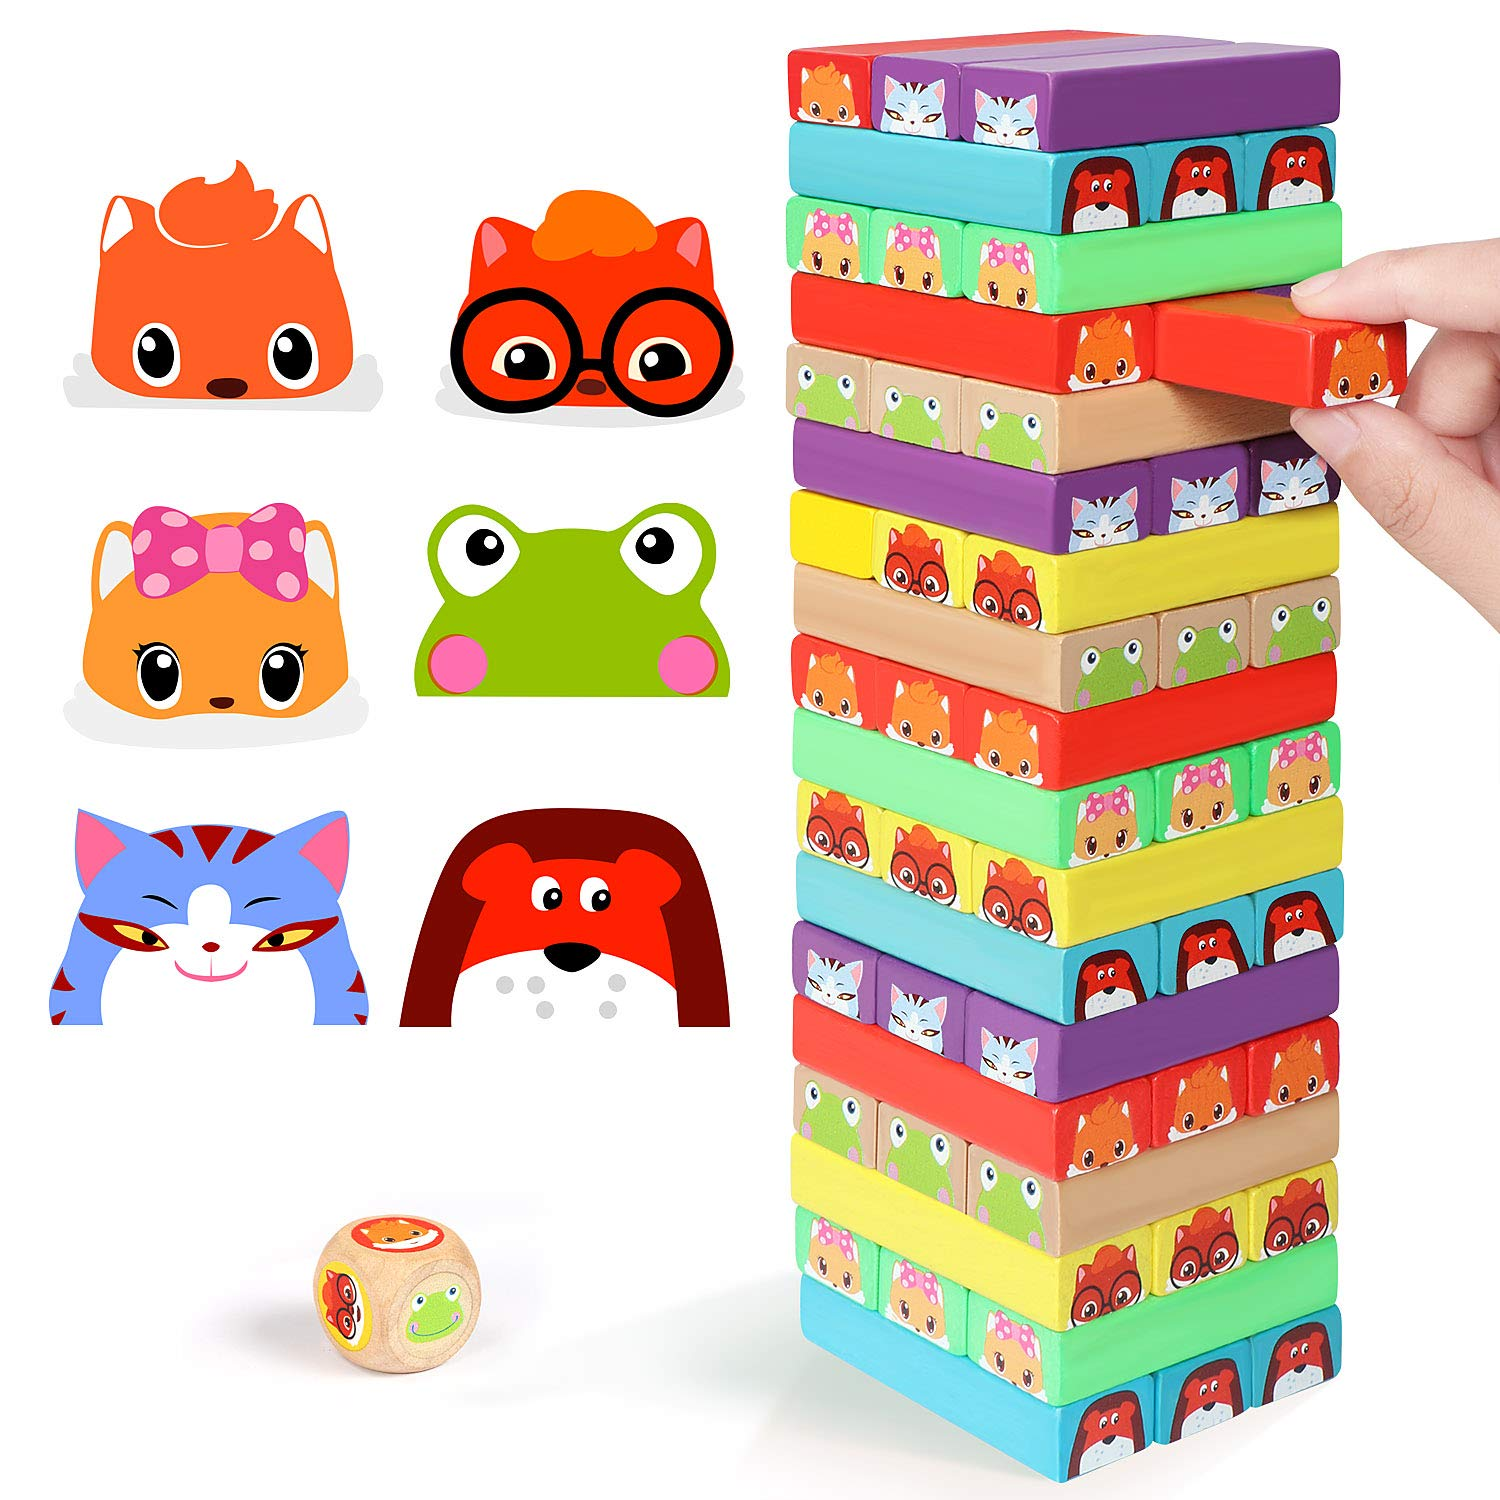 Lewo Colored Stacking Game Wooden Building BlocksTower Board Games for Kids Adults 54 Pieces (Colorful Stacking Gane) by Lewo